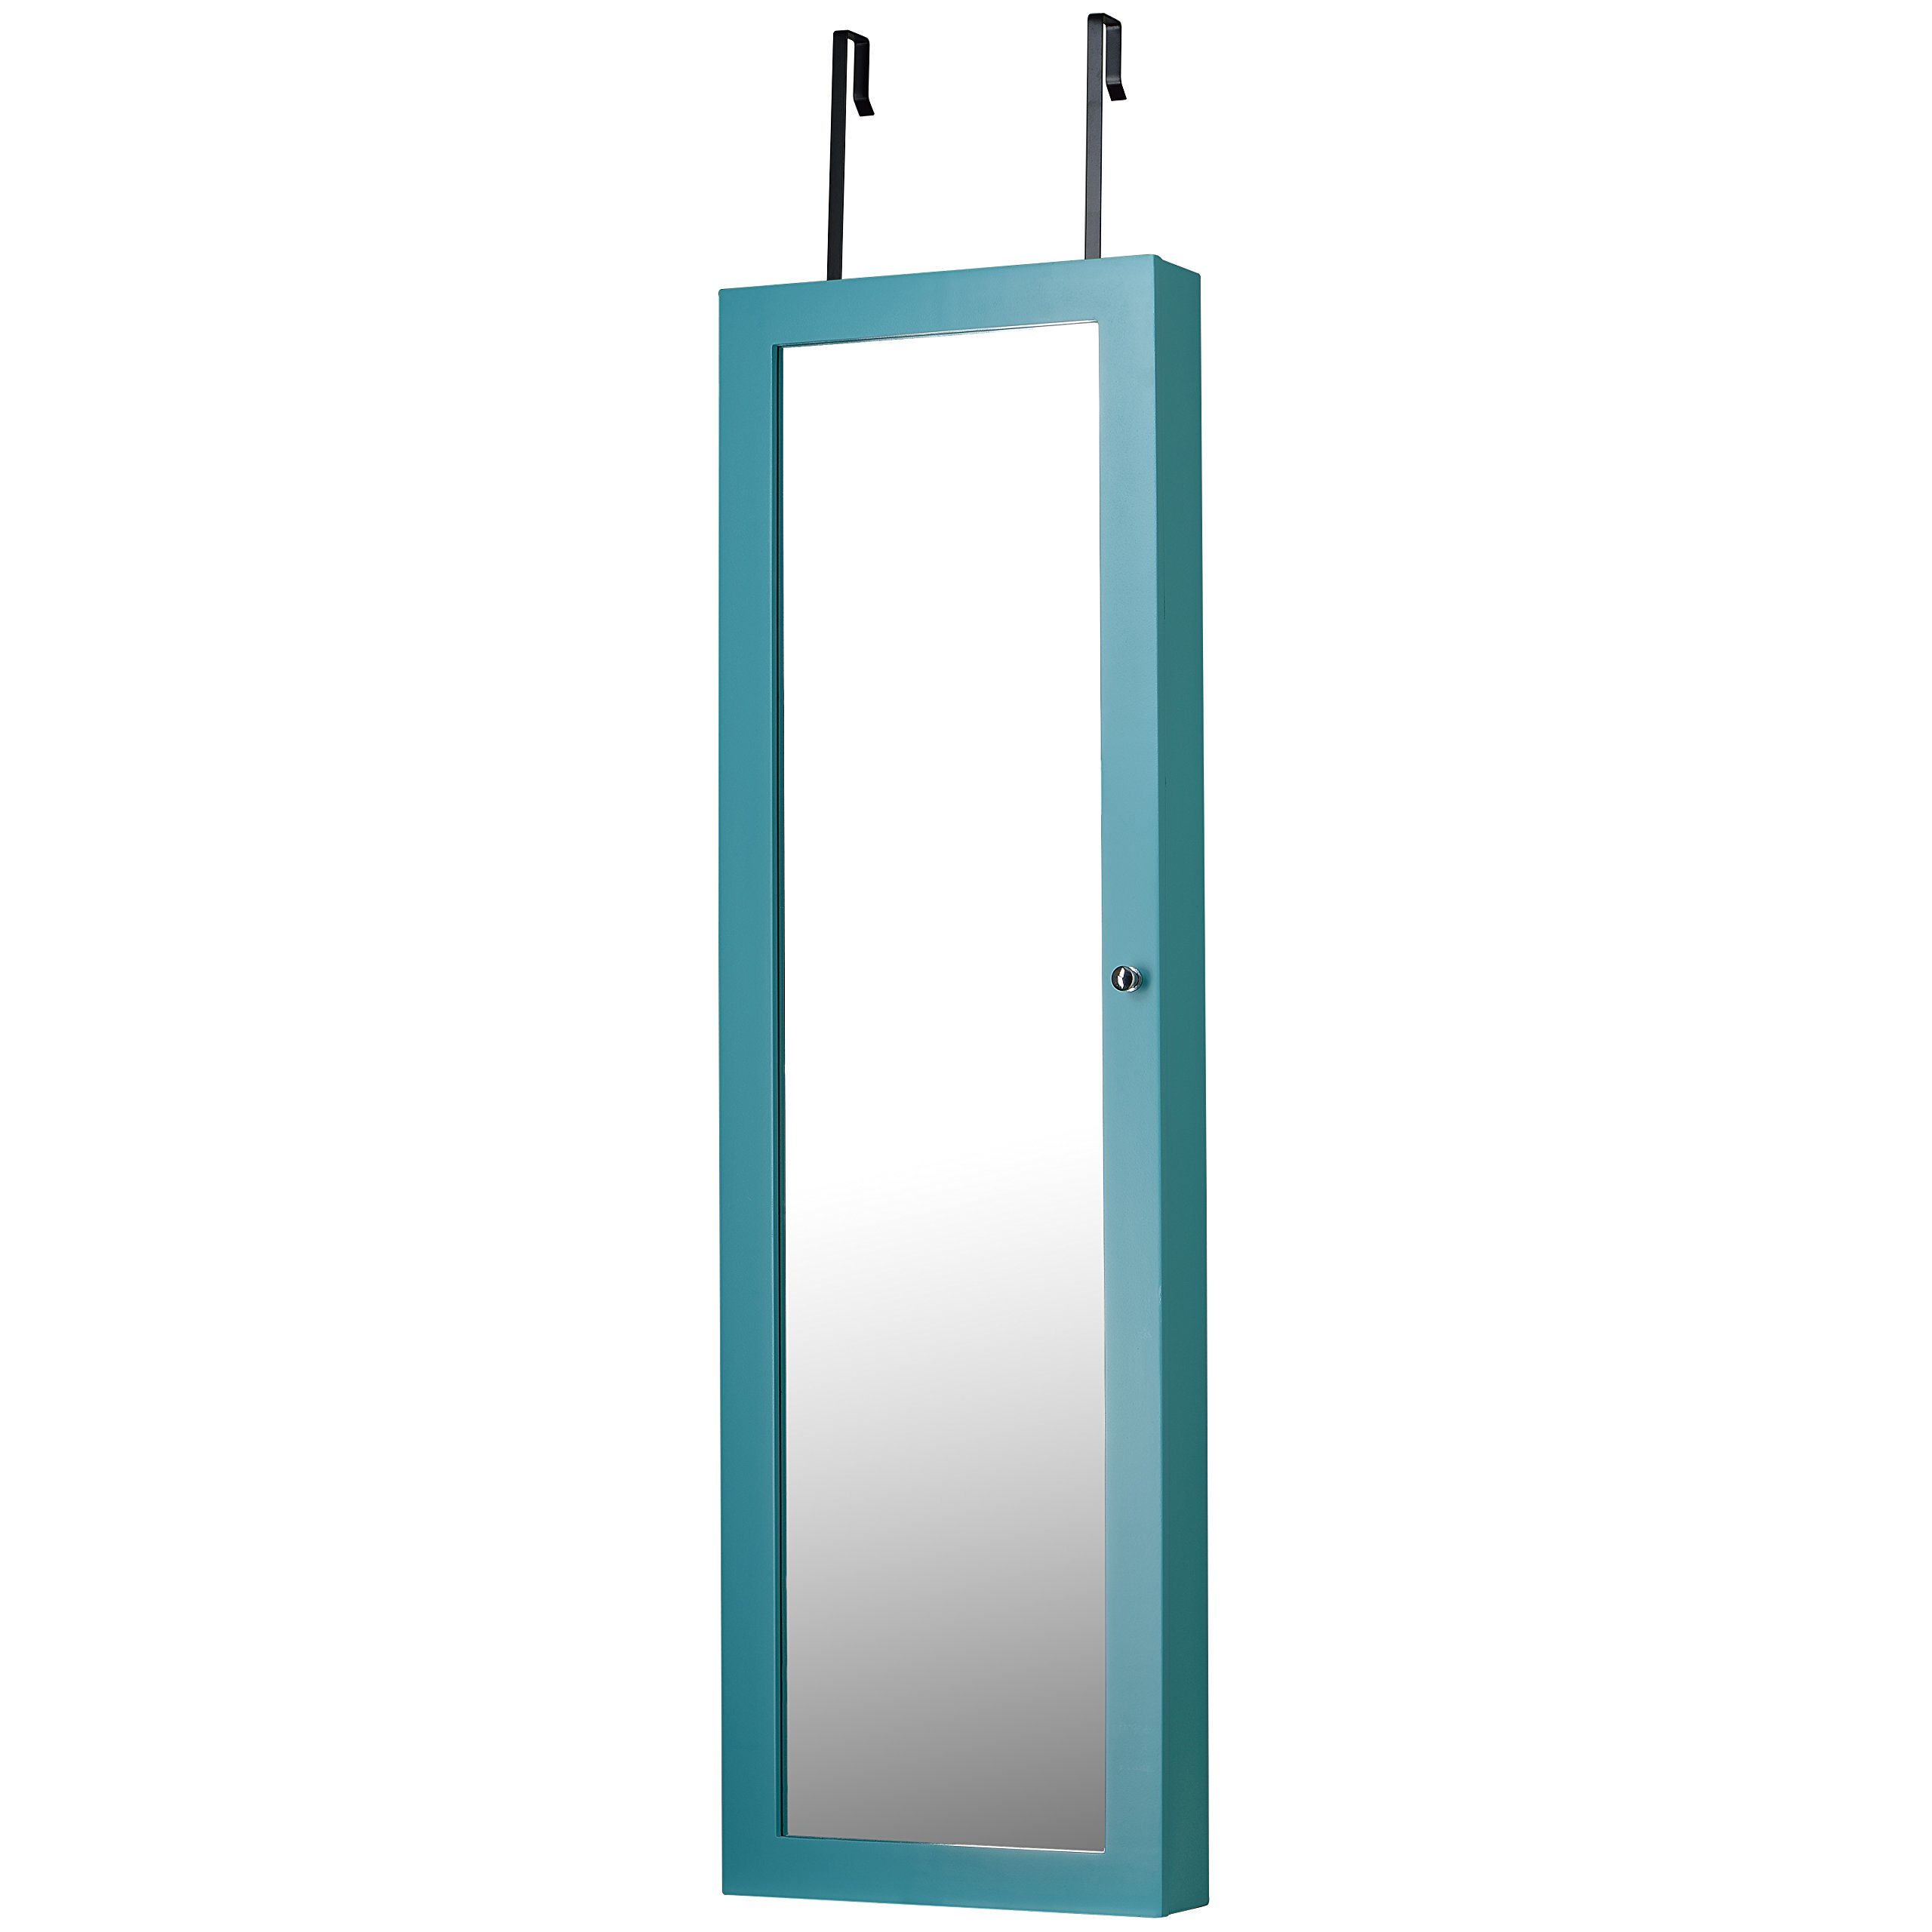 Mirrored Jewelry Armoire, Turquoise